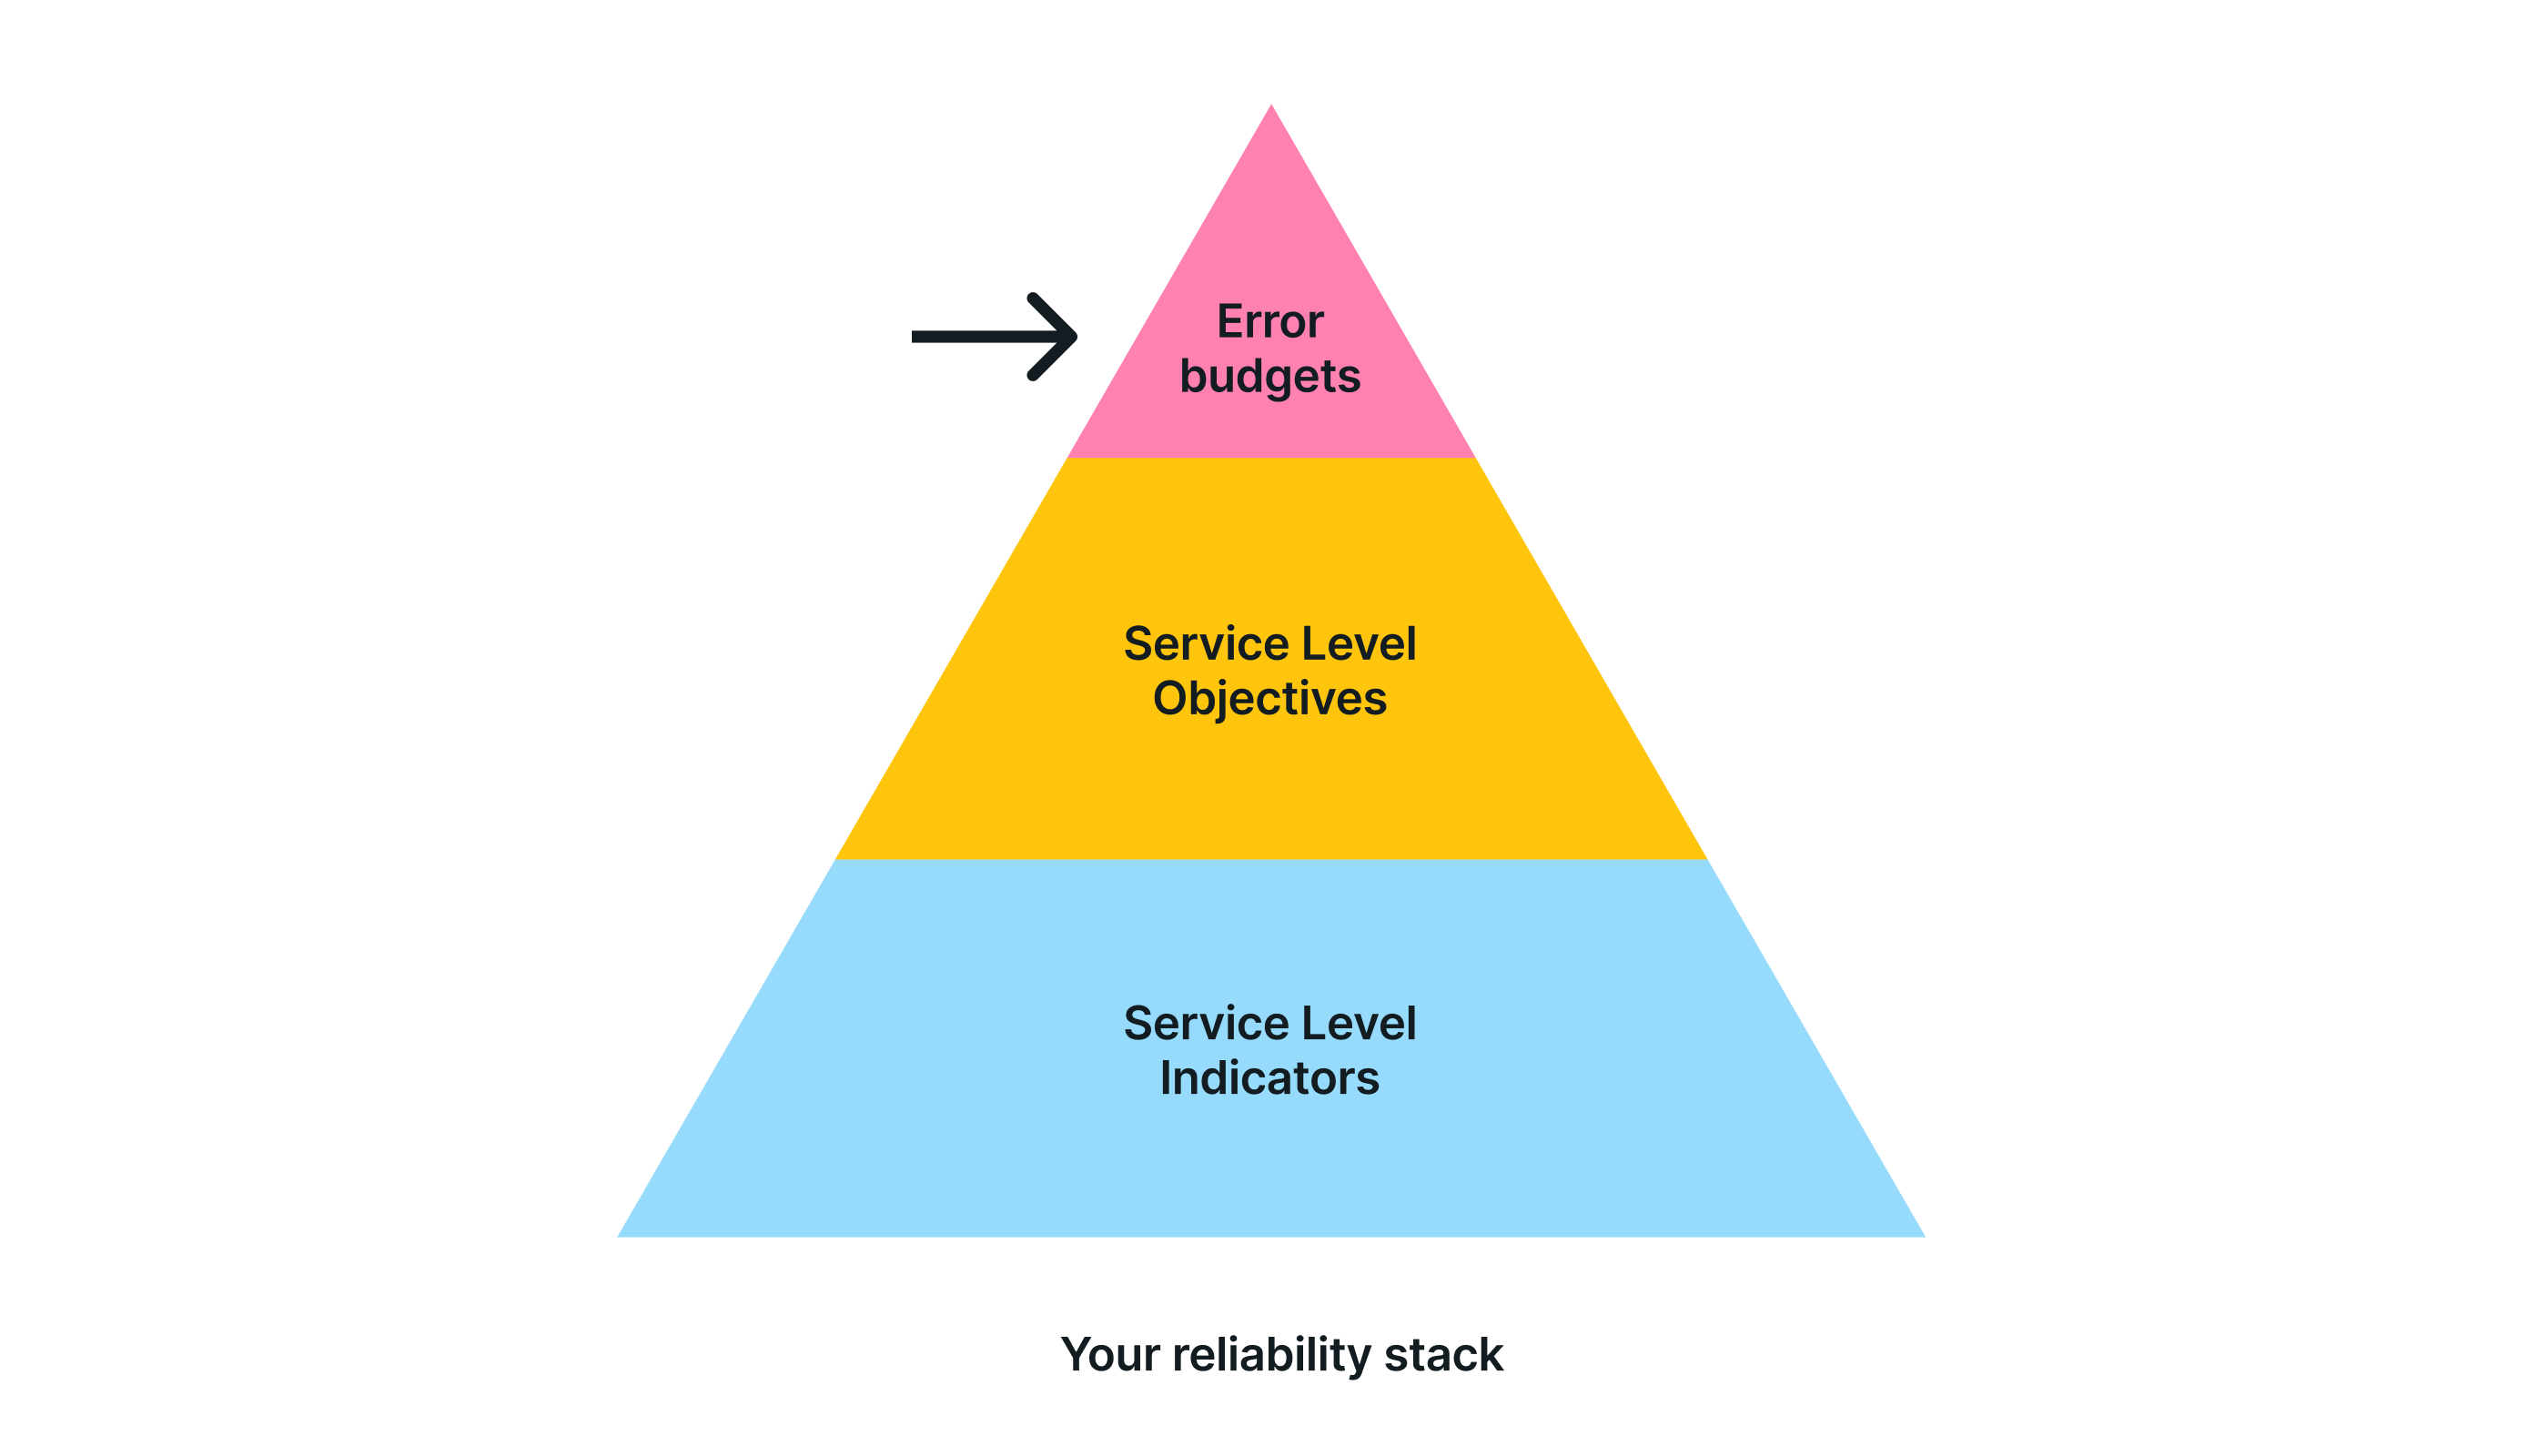 Error Budgets in your reliability stack